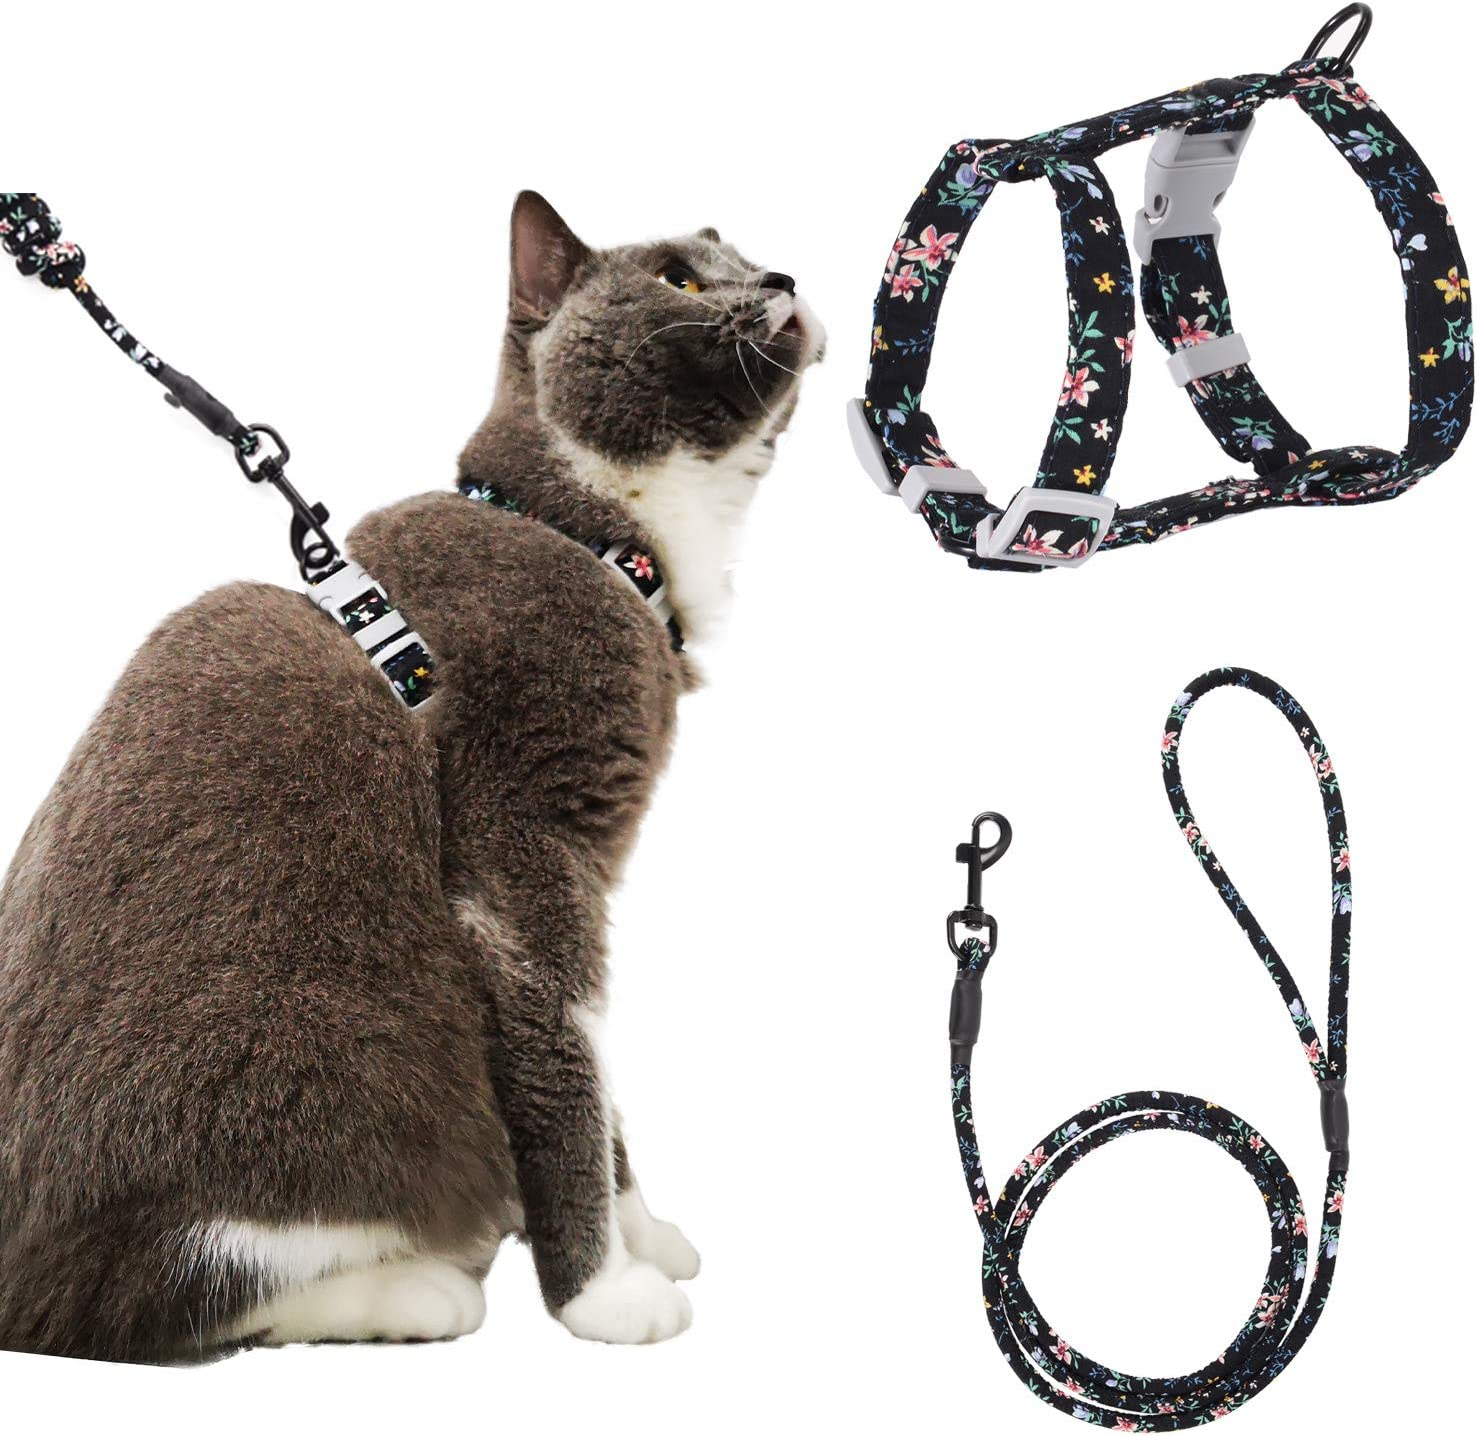 Happy Hachi Cat Lead Adjustable Cat Harness And Lead Set Soft Escape Proof H Style Harness Kitten Leash Walking Rope Black S Amazon Co Uk Pet Supplies